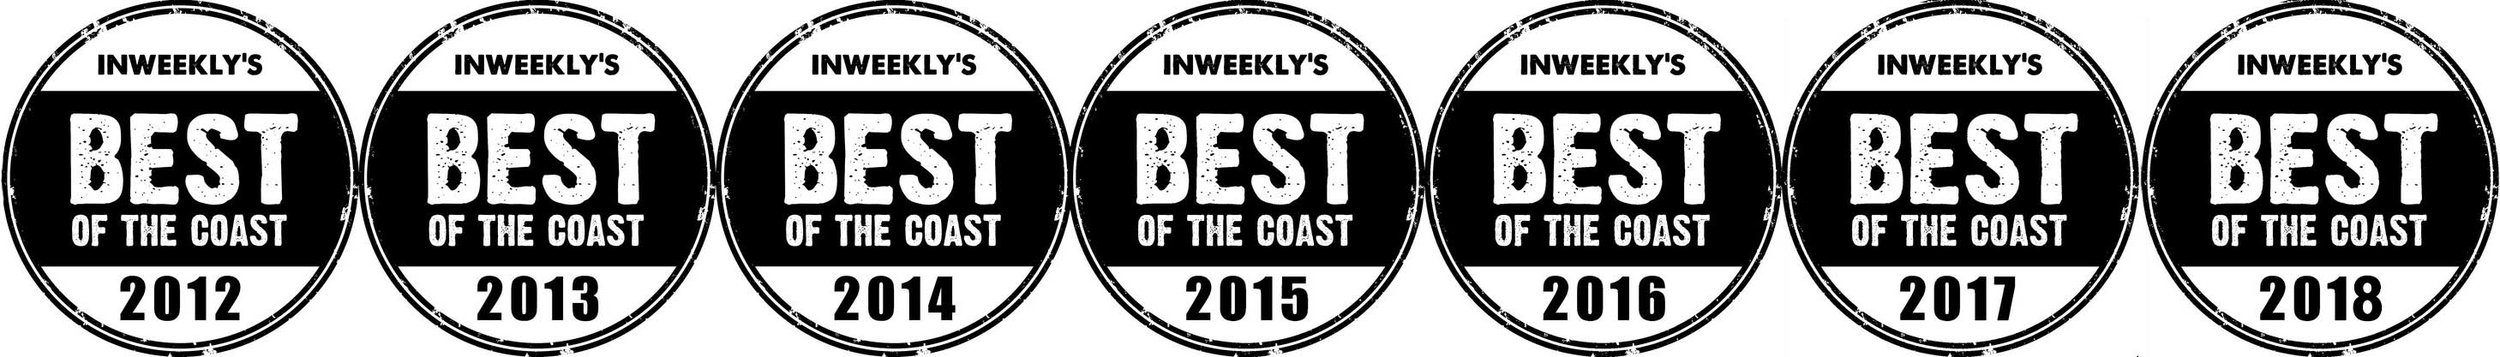 Best of the Coast Banner 2018.jpg